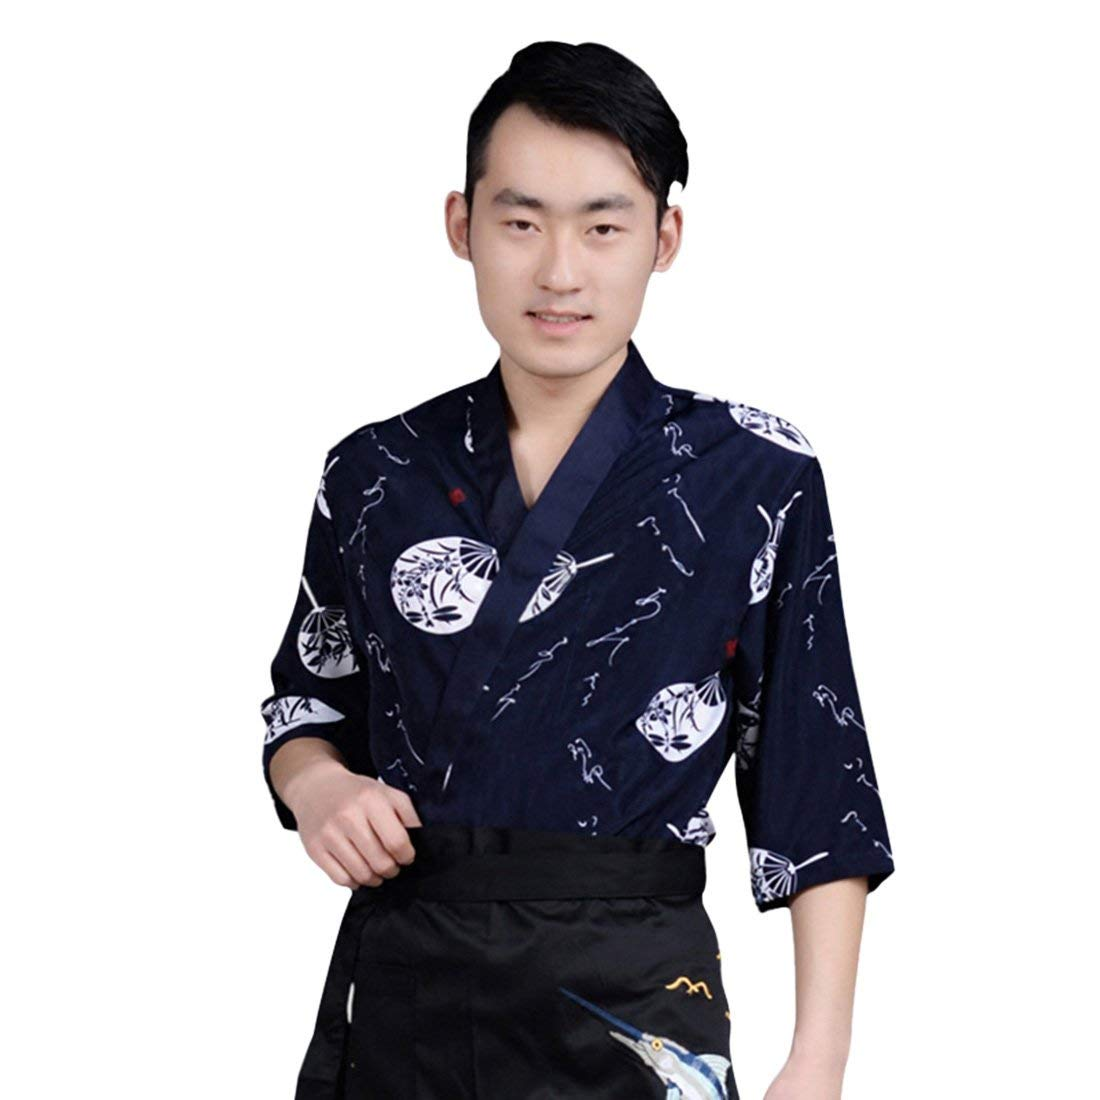 Jiyaru Unisex Sushi Chef Jacket Kimono Japanese Korea Coat Chef Uniform